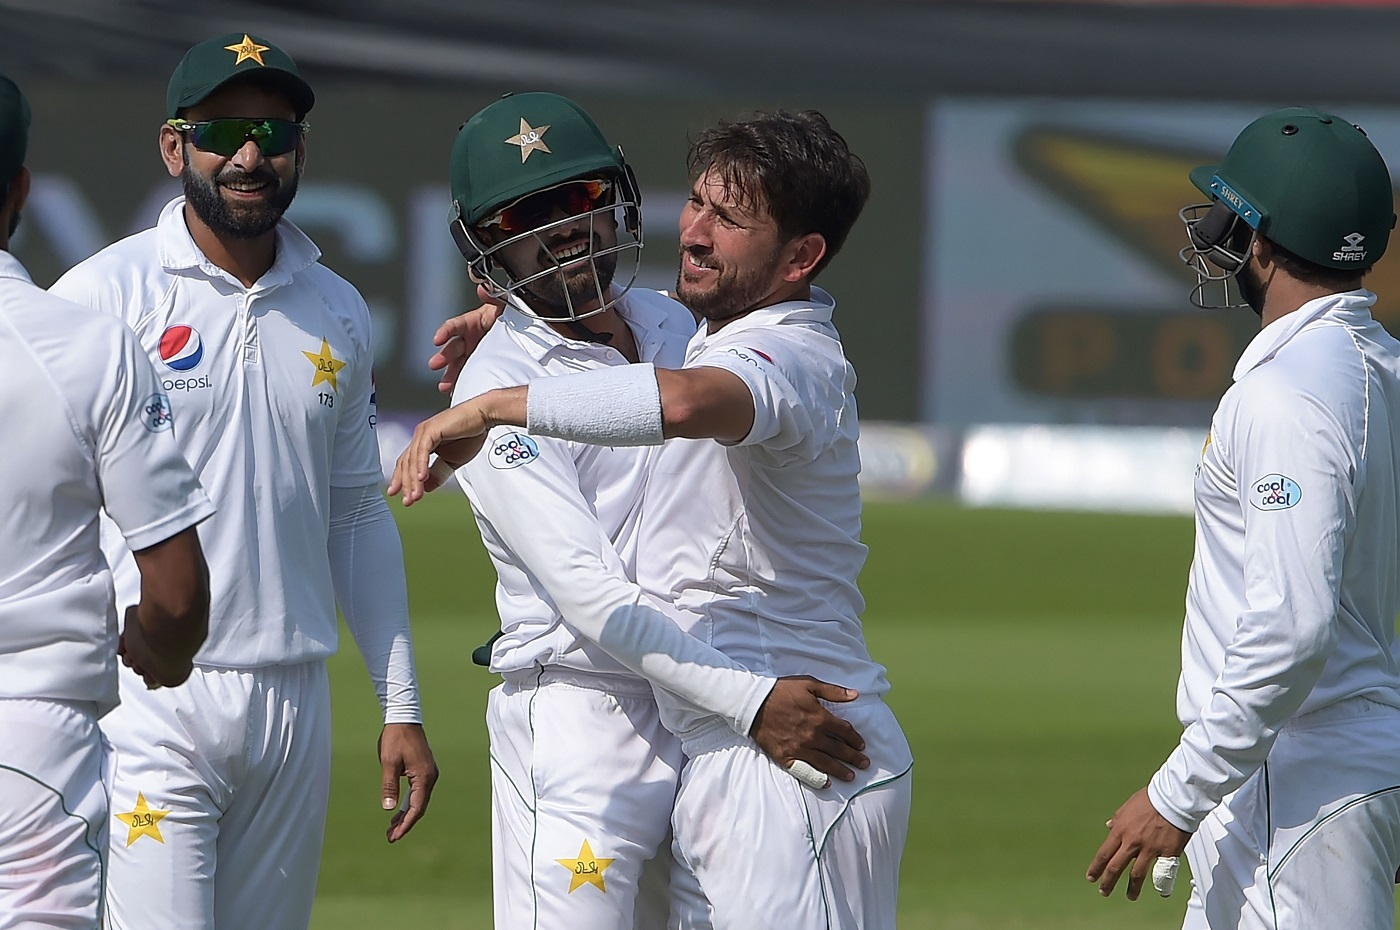 Yasir Shah becomes the fastest bowler to 200 Test wickets